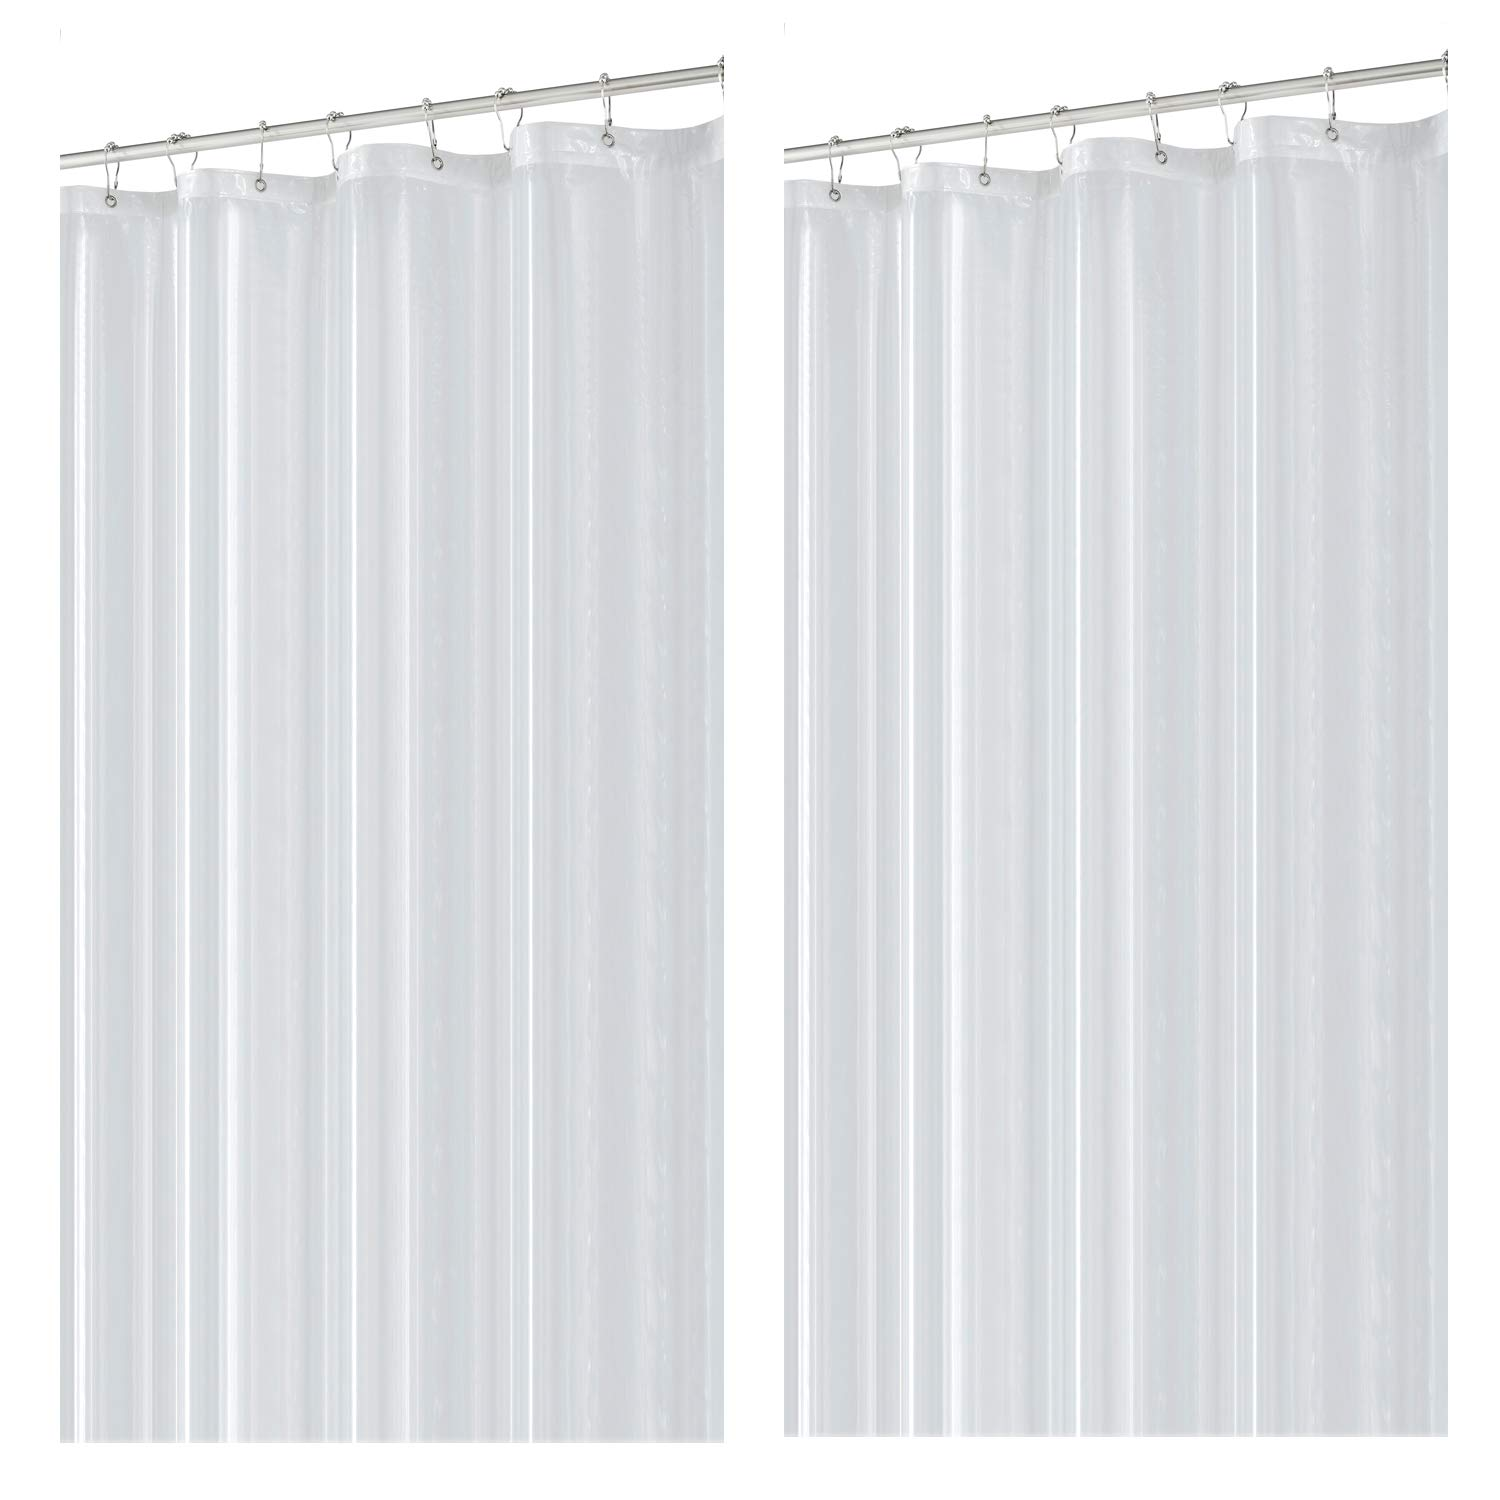 Eforcurtain Small Width Curtains 36 by 72 Inch Modern Classic White Waffle Bathroom Shower Curtain Waterproof abric Shower Curtain for Indoor Use